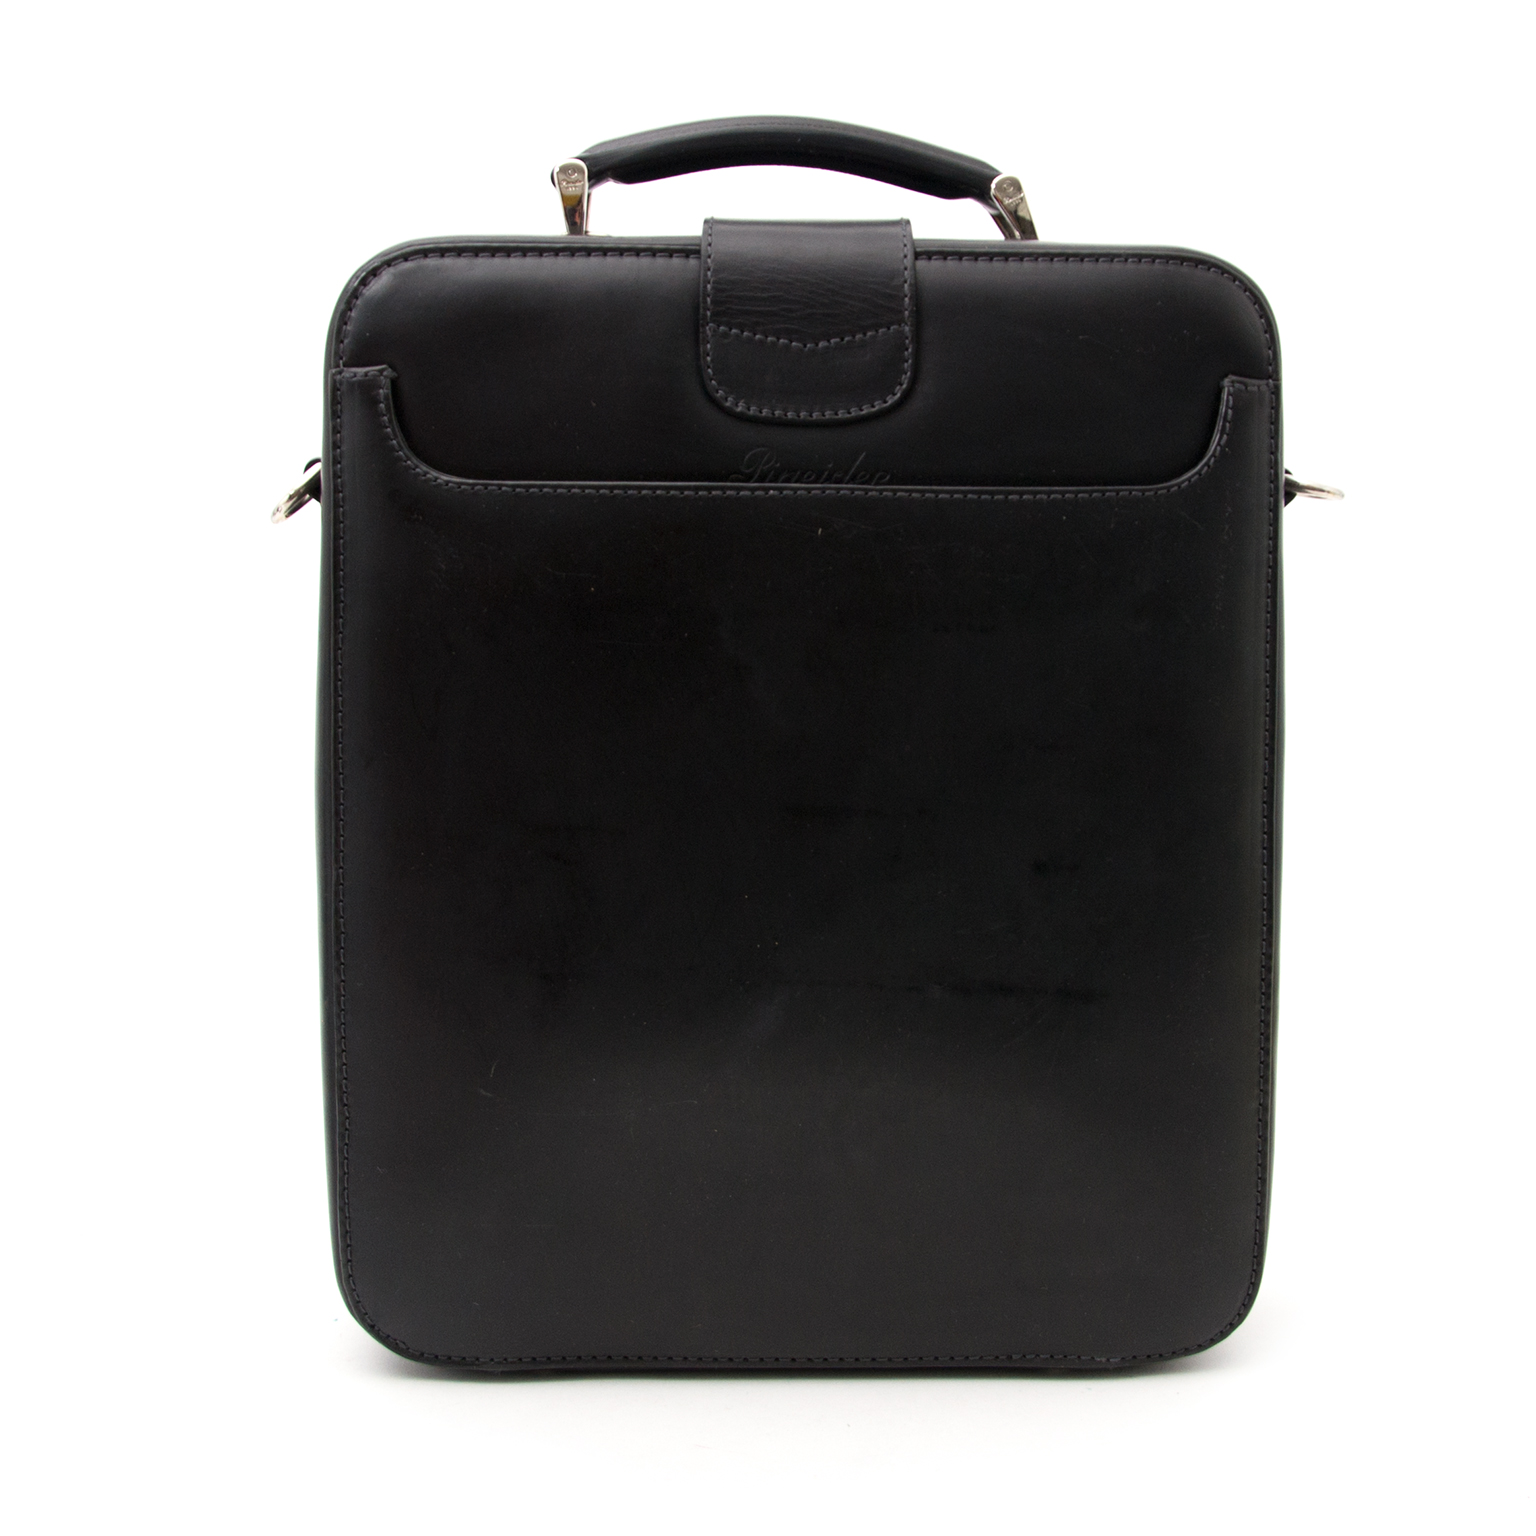 Beautiful designer laptop briefcases for sale in Antwerp or online www.labellov.com, the best condition and prices for all the luxurious items. Worldwide shipping and secure shopping!